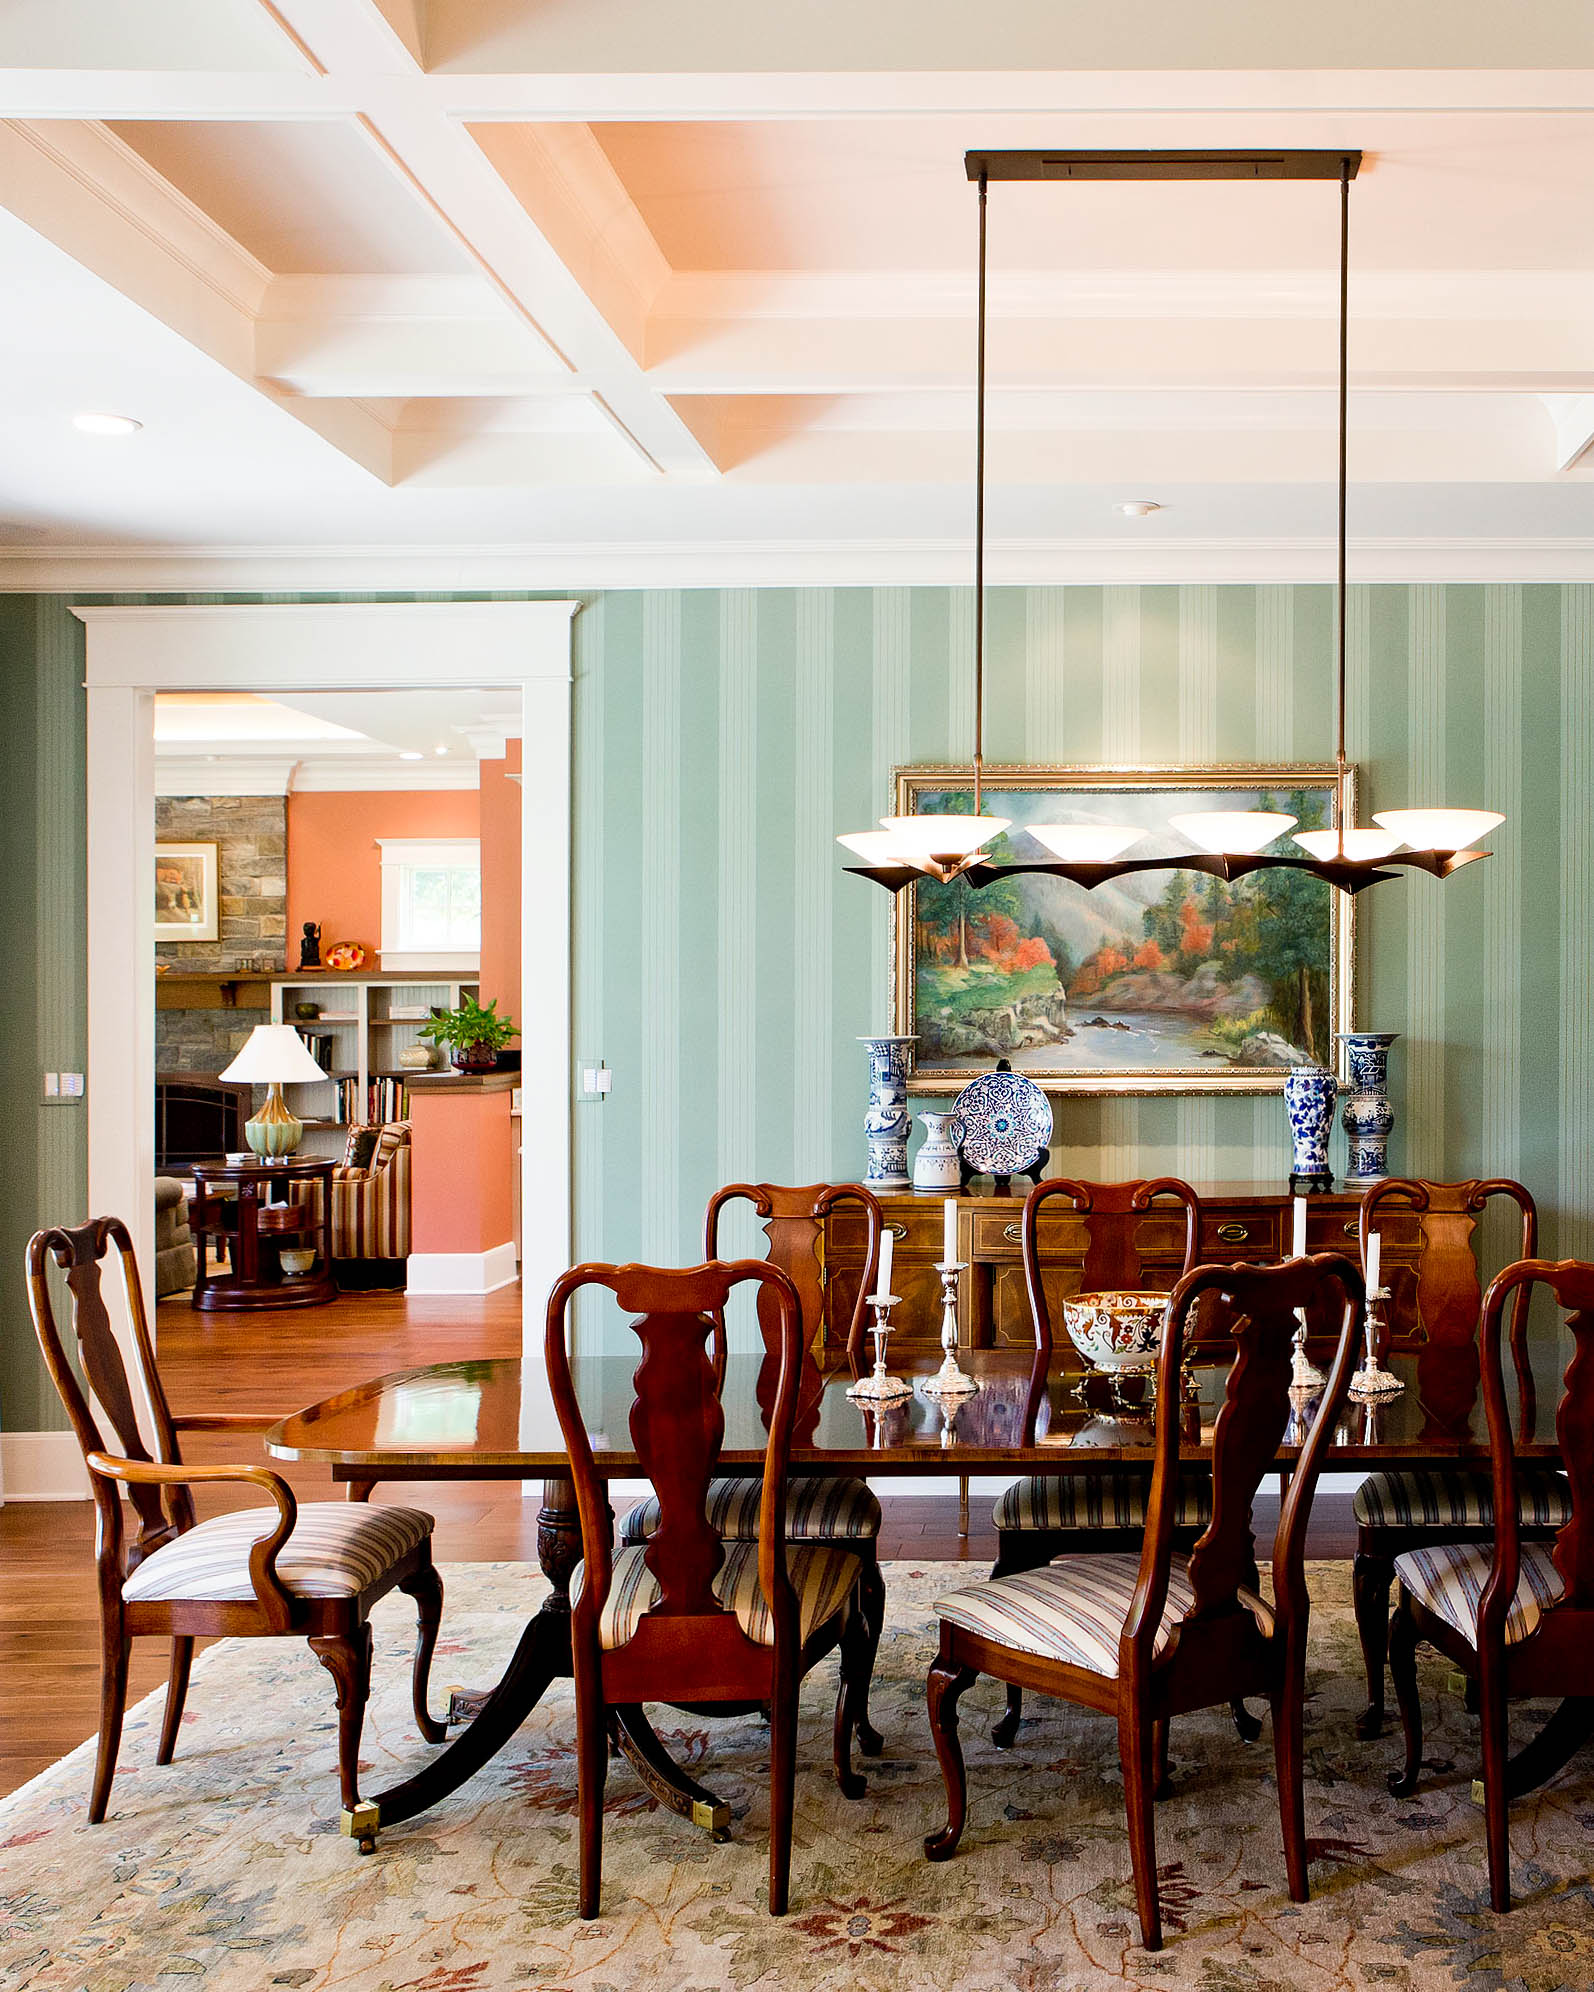 We coordinated everything in this quality design at Mason Neck, Northern Virginia. Wallpaper selection, paint color consultation, lighting design, rug selection, and custom furniture.